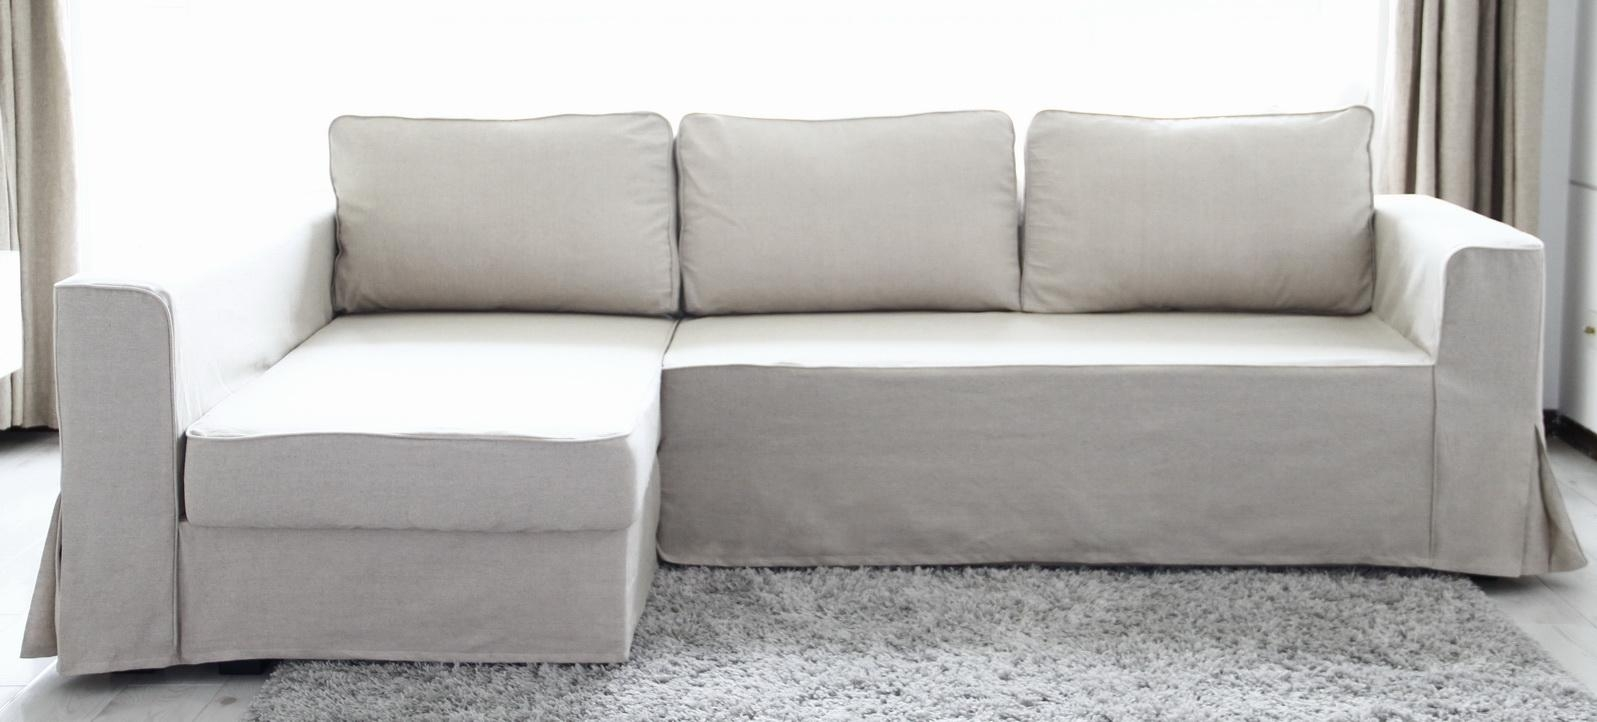 Loose Fit Linen Manstad Sofa Slipcovers Now Available Intended For Manstad Sofa Bed (View 14 of 20)